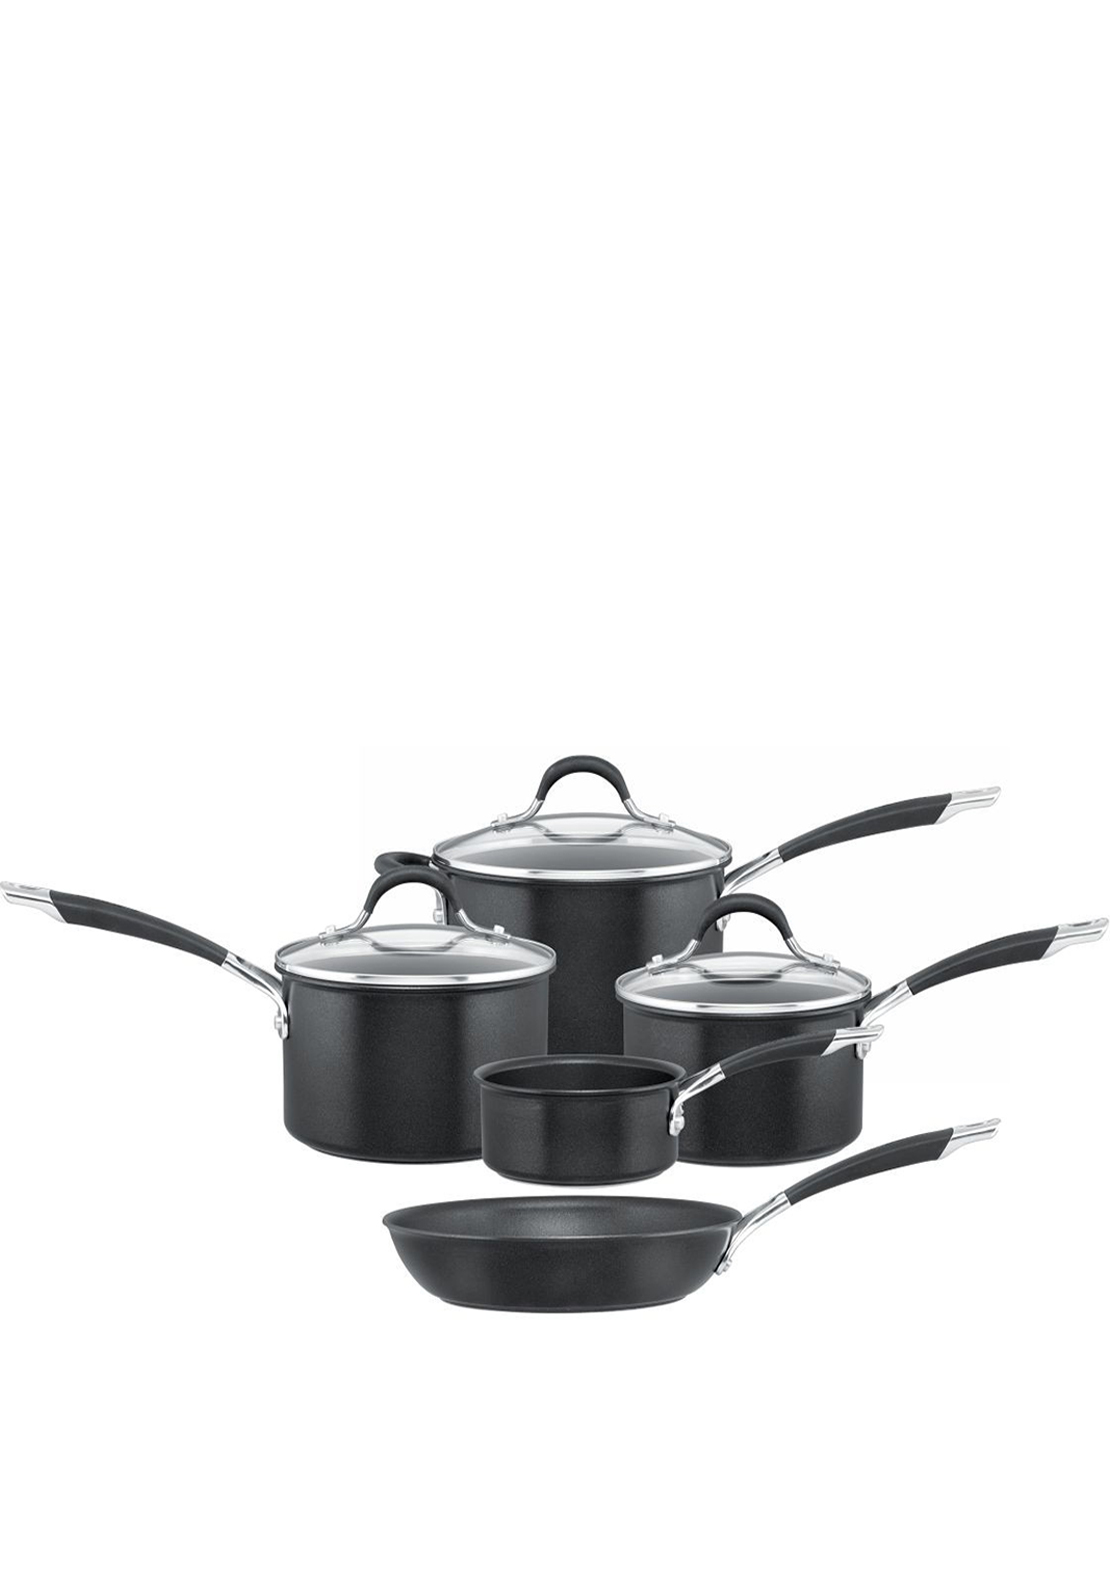 Meyer Circulon Momentum 5 Piece Cookware Set